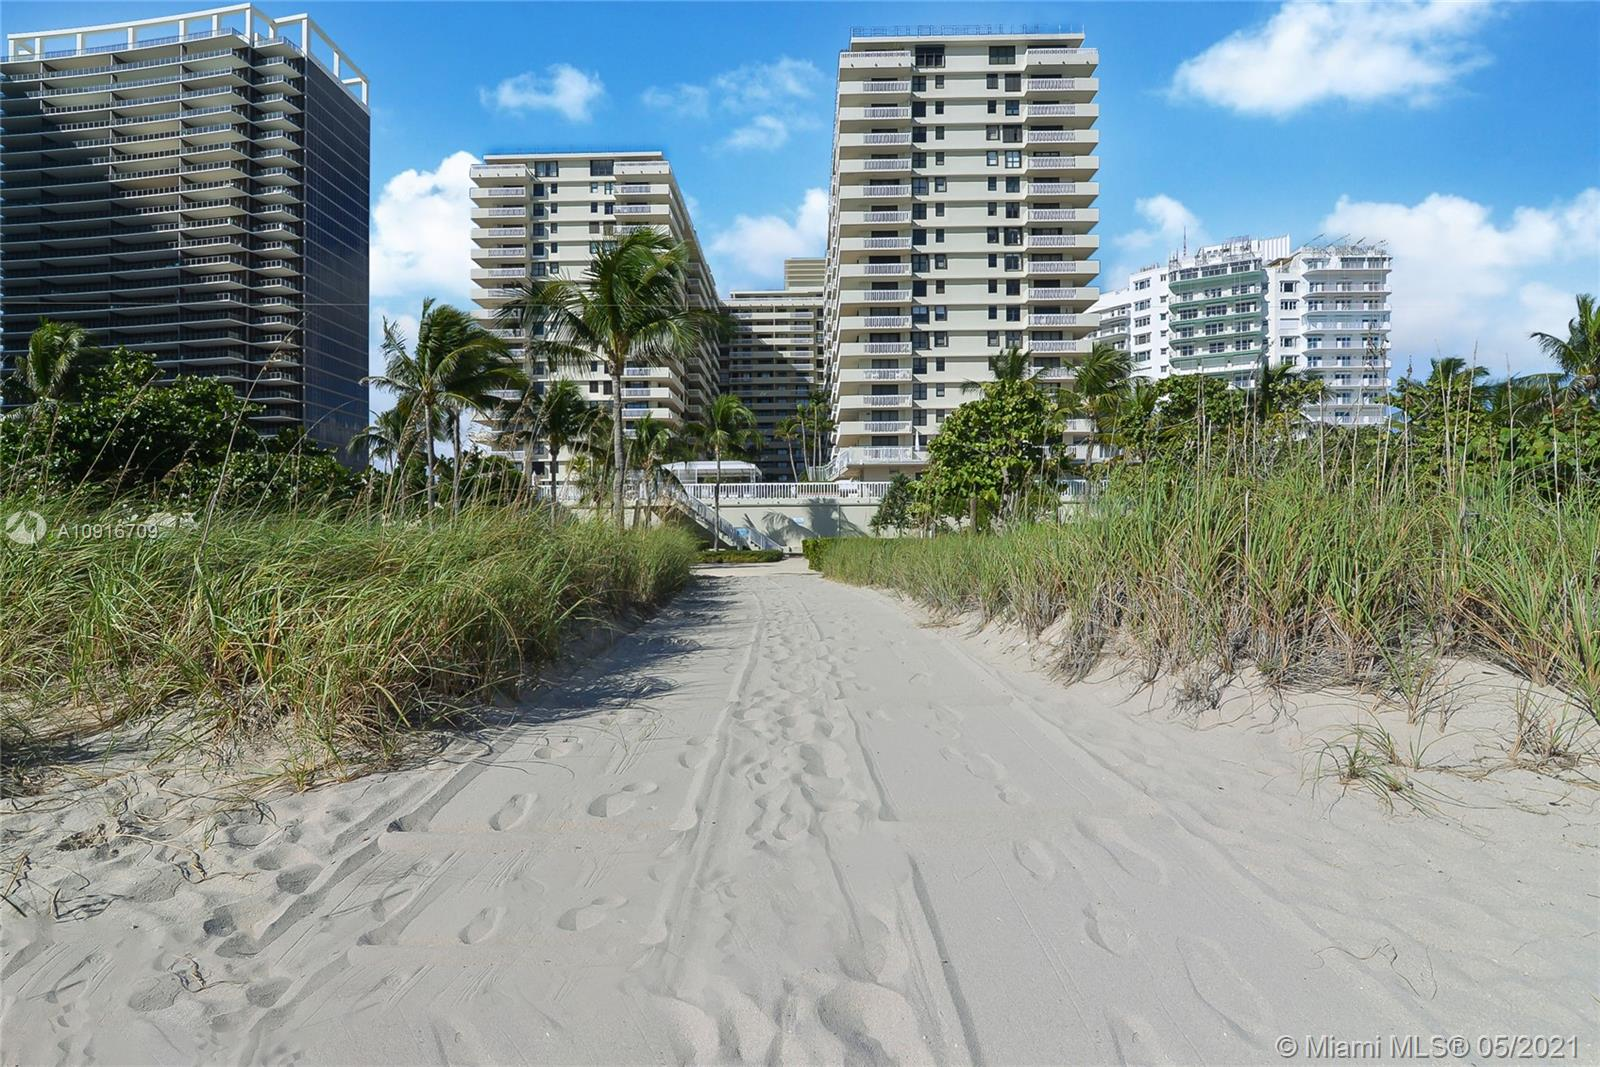 Photo of 9801 Collins Ave #11B Direct Ocean, Bal Harbour, Florida, 33154 - The balmoral Beach, with Servise included